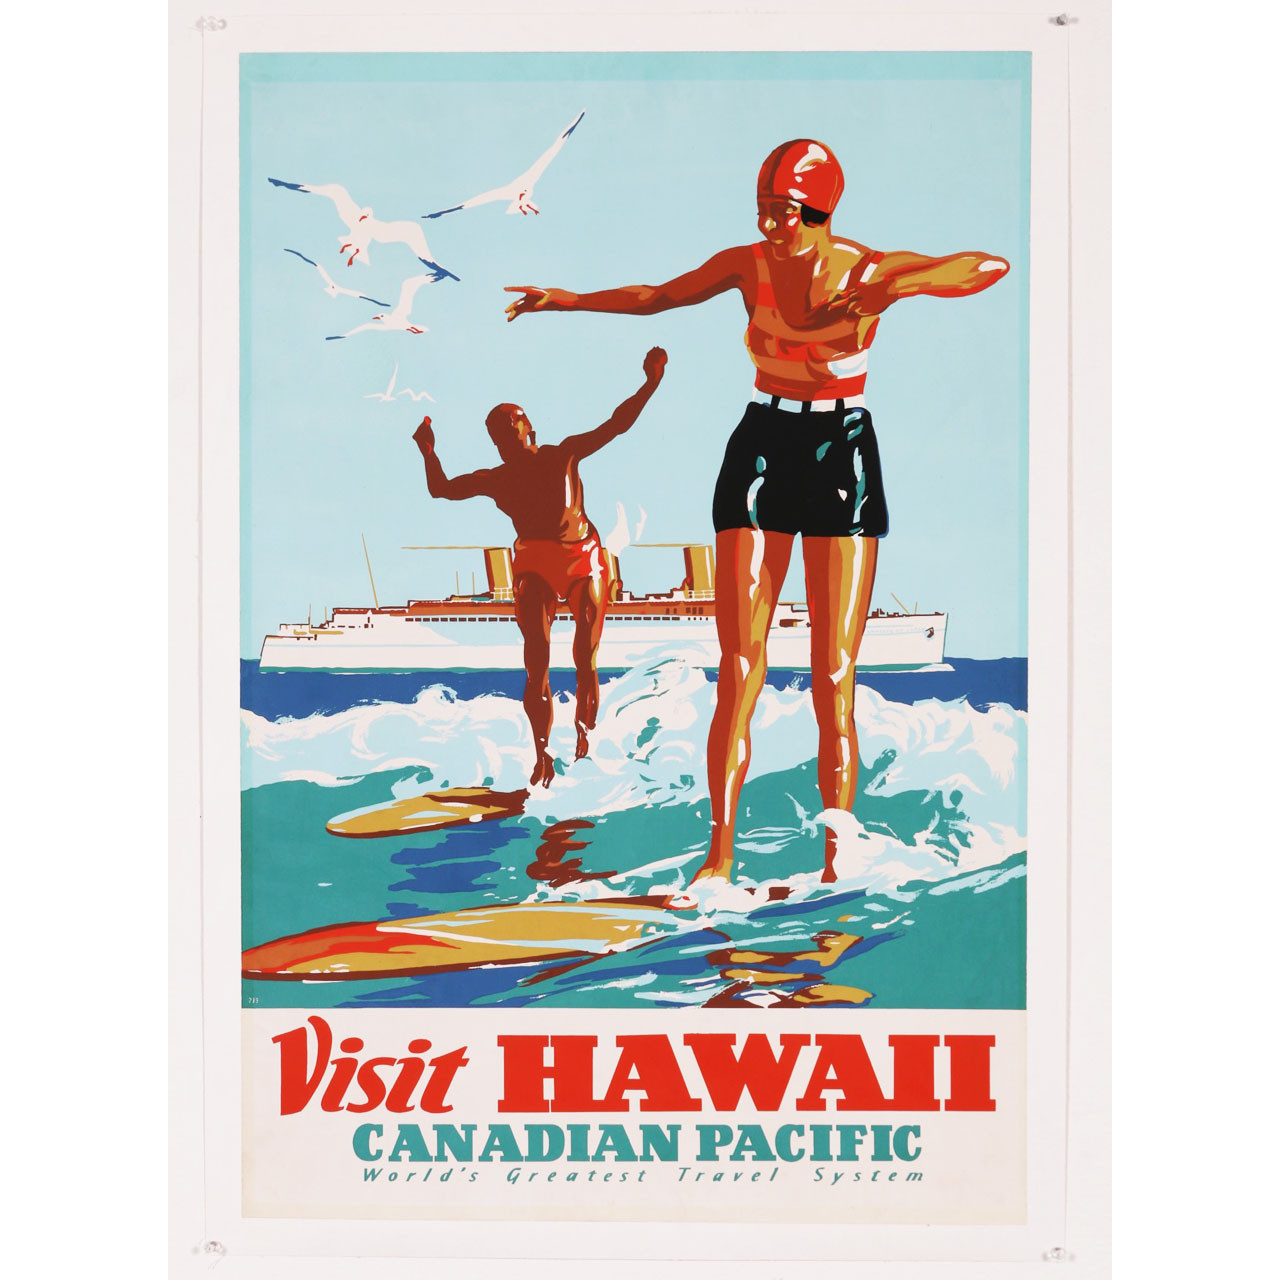 Original Vintage Canadian Pacific Hawaii Surf Travel Poster 1930s